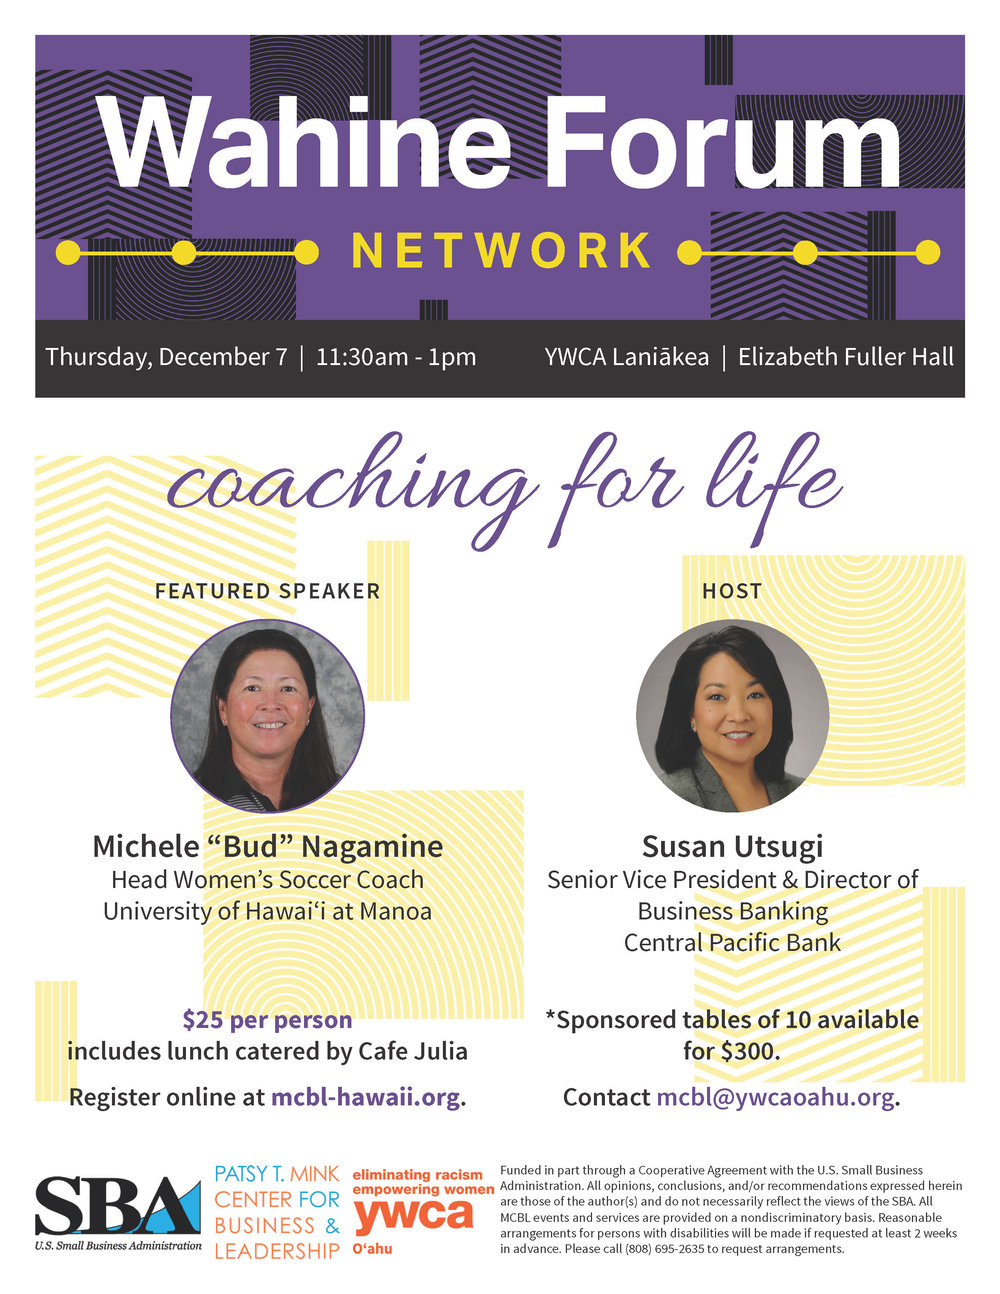 Wahine Forum Network - Coaching for Life.jpg